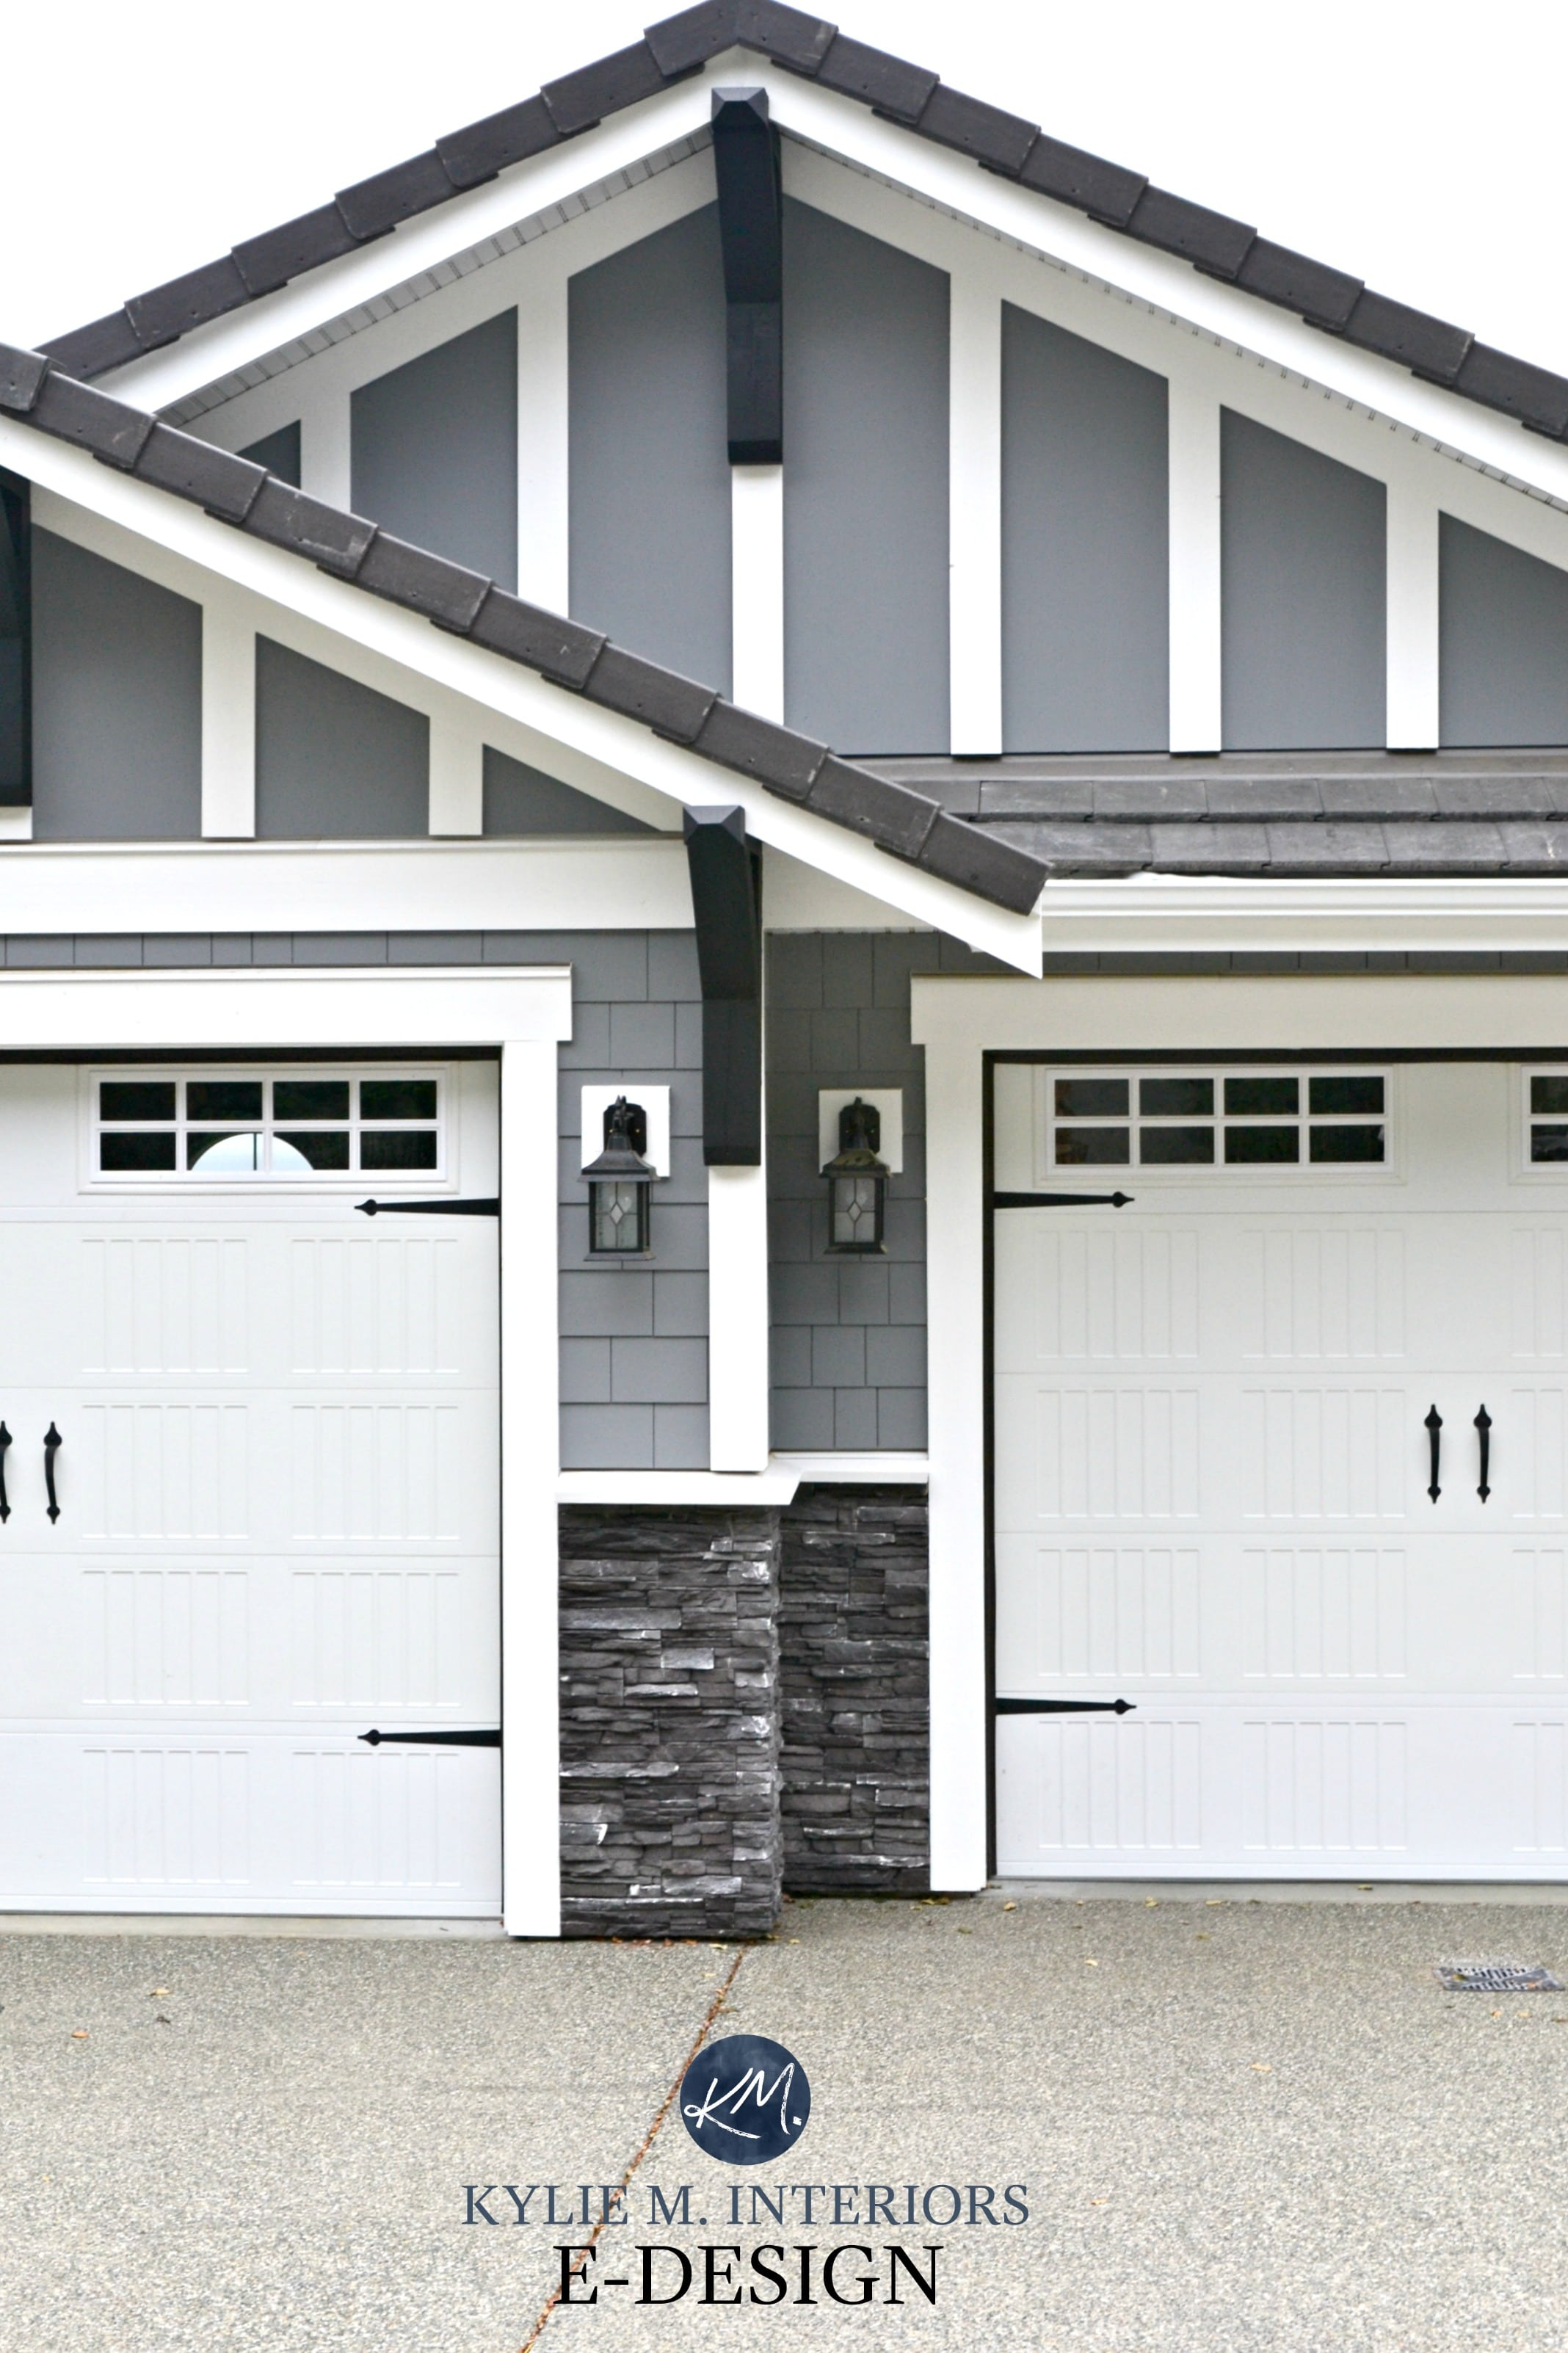 Charmant Exterior Paint Colour Dark Gray, Similar To BEnjamin Moore Dior Gray, White  Trim, Garage Doors, Dark Gray Charcoal Ledgestone. Kylie M E Design, ...